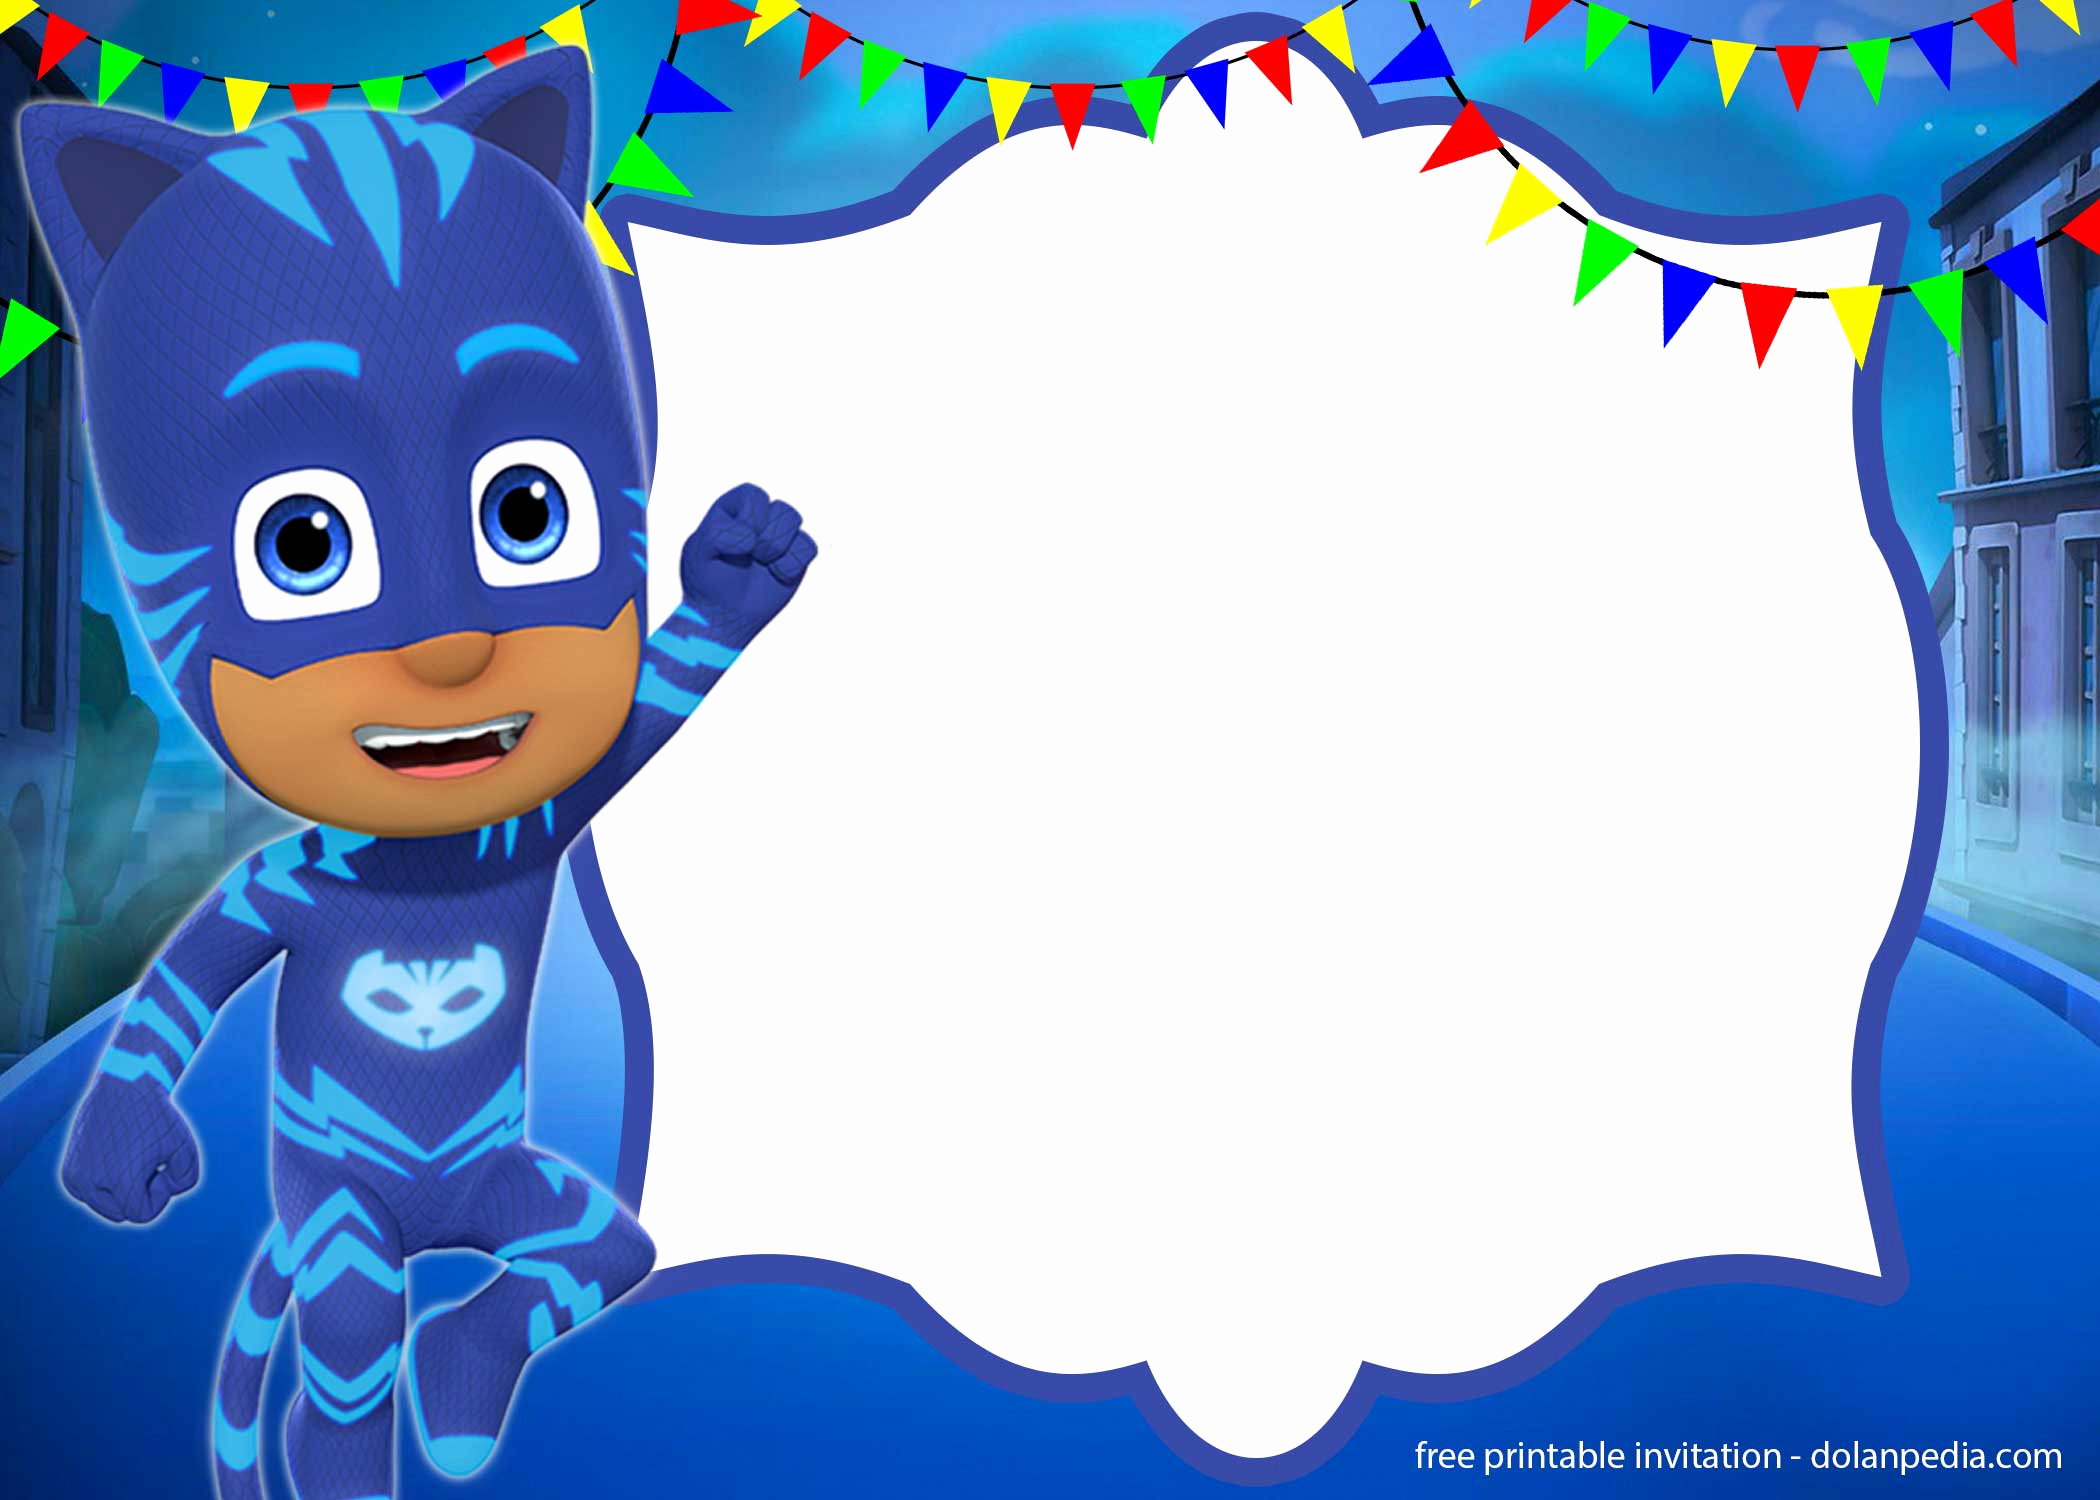 Pj Mask Invitation Template New 9 Free Pj Masks Birthday Invitation Templates – Updated